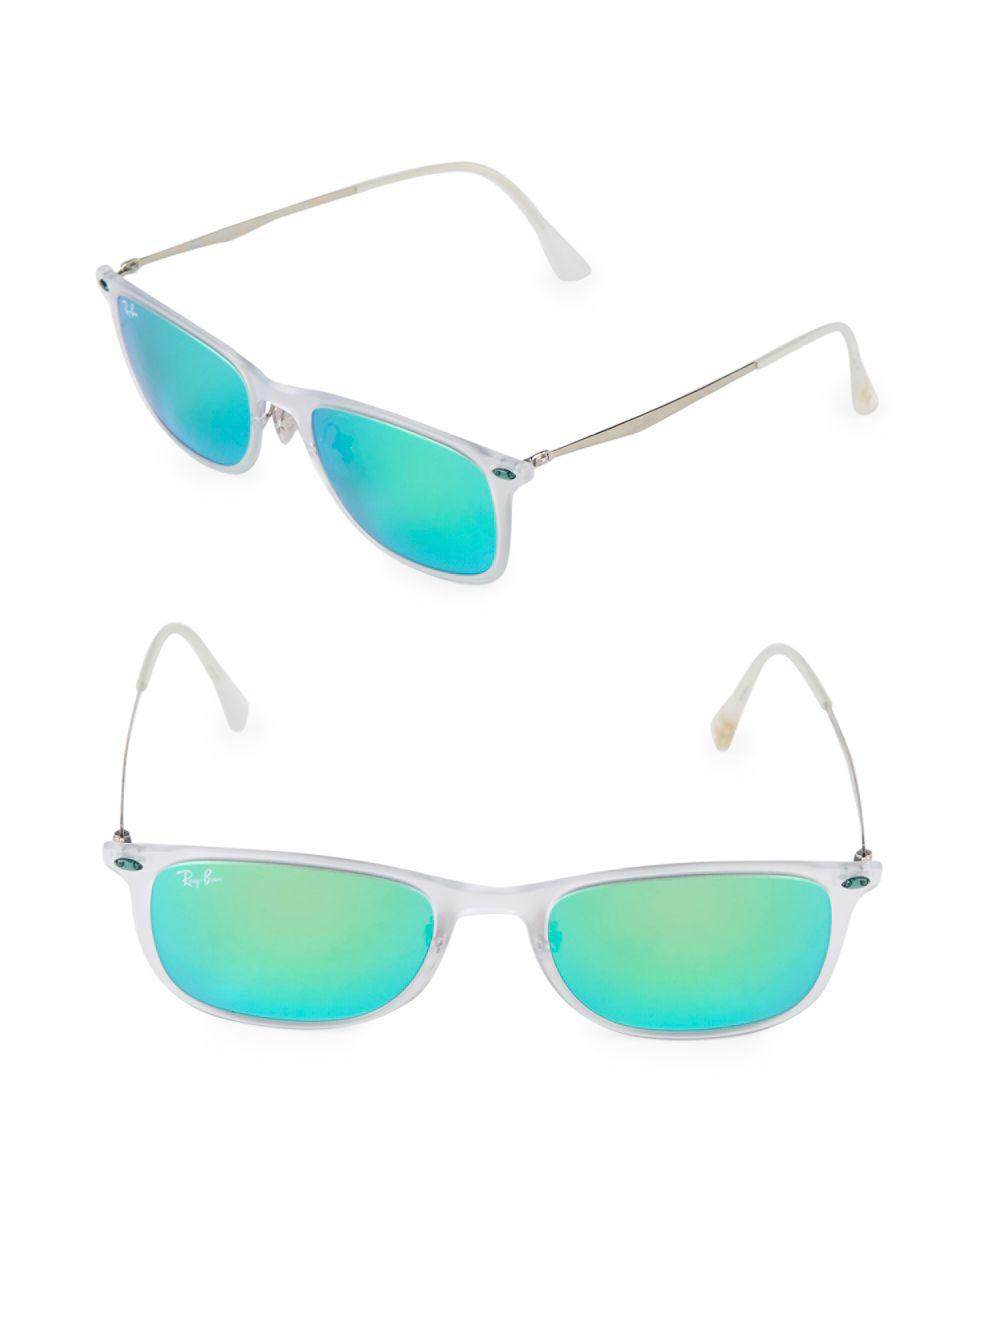 c038fe9bdf8 Lyst - Ray-Ban 52mm Square Sunglasses in White